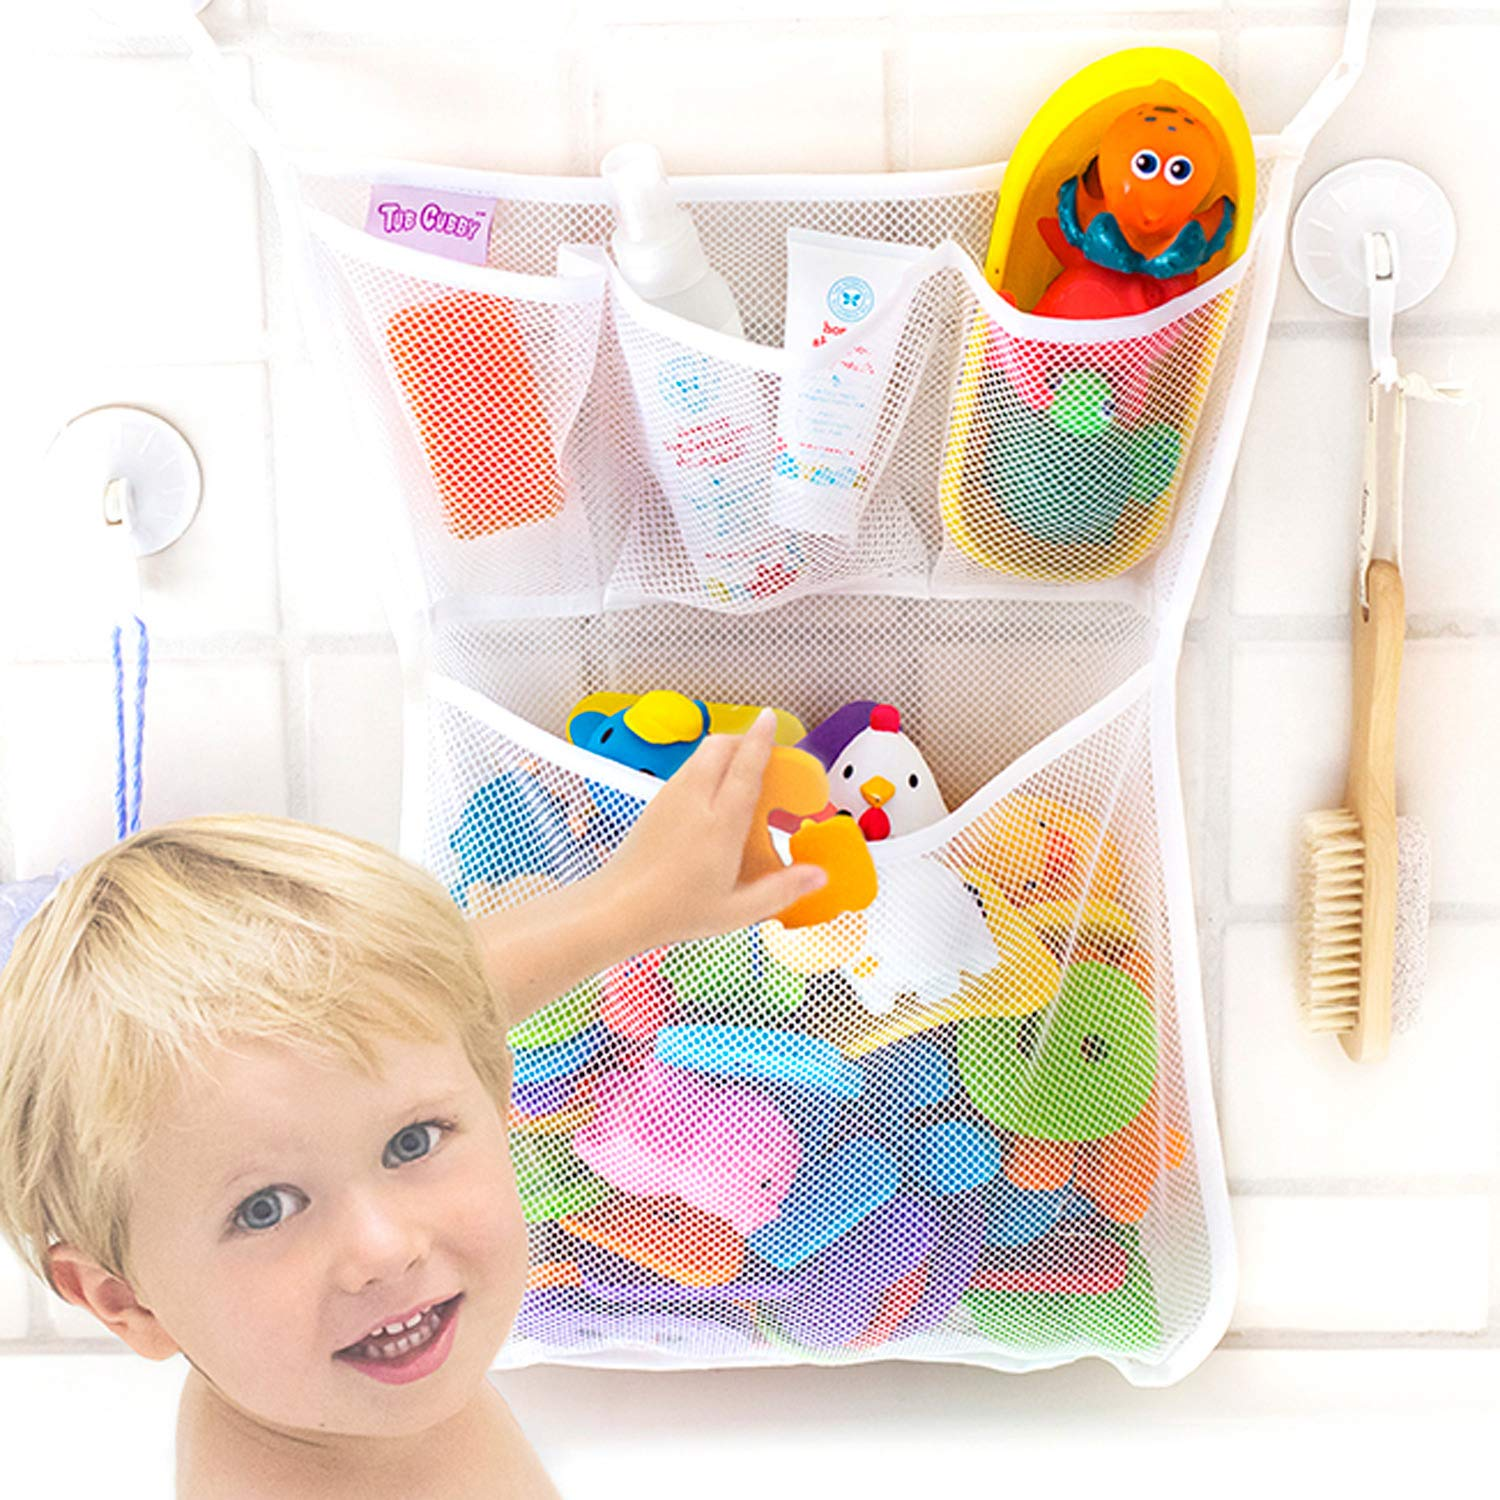 Best bath tub toys for baby | Amazon.com